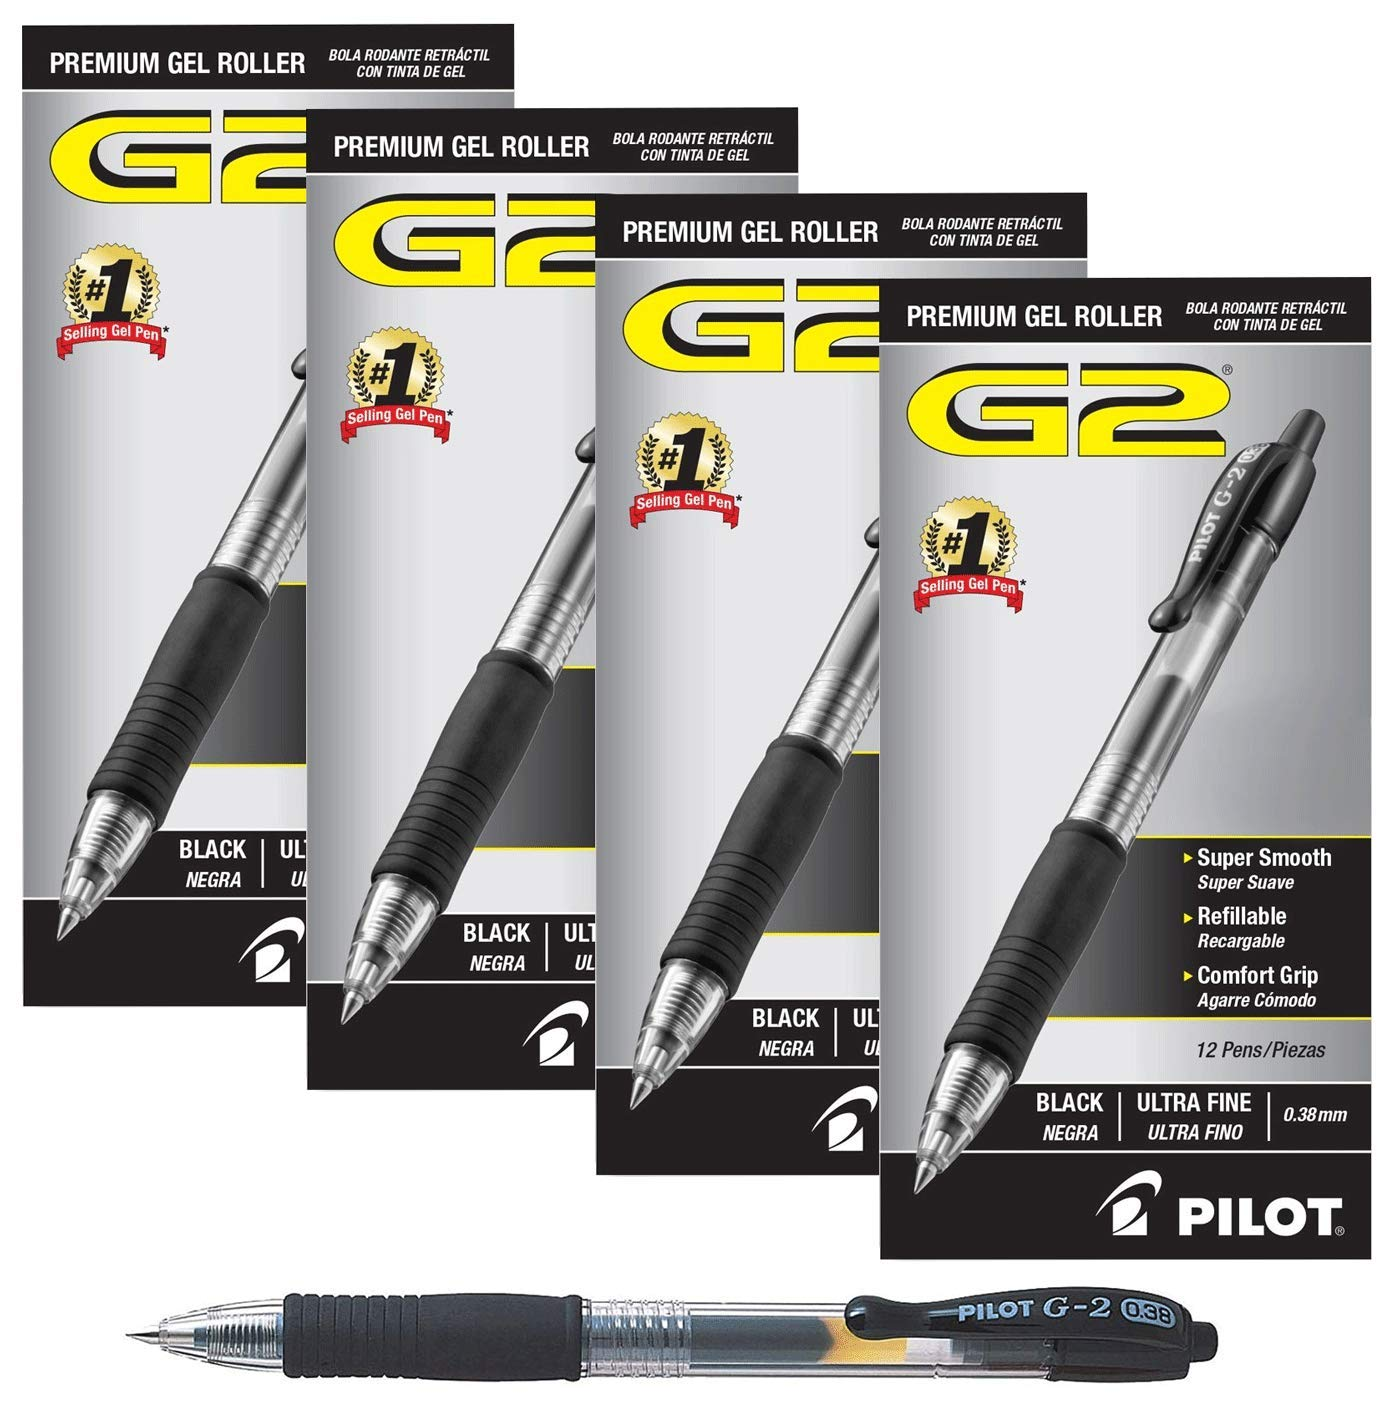 Pilot G2 Retractable Premium Gel Ink Roller Ball Pens Ultra Fine 4 Dozen Black ; Retractable, Refillable & Premium Comfort Grip; Smooth Lines to the End of the Page, America's #1 Selling Pen Brand